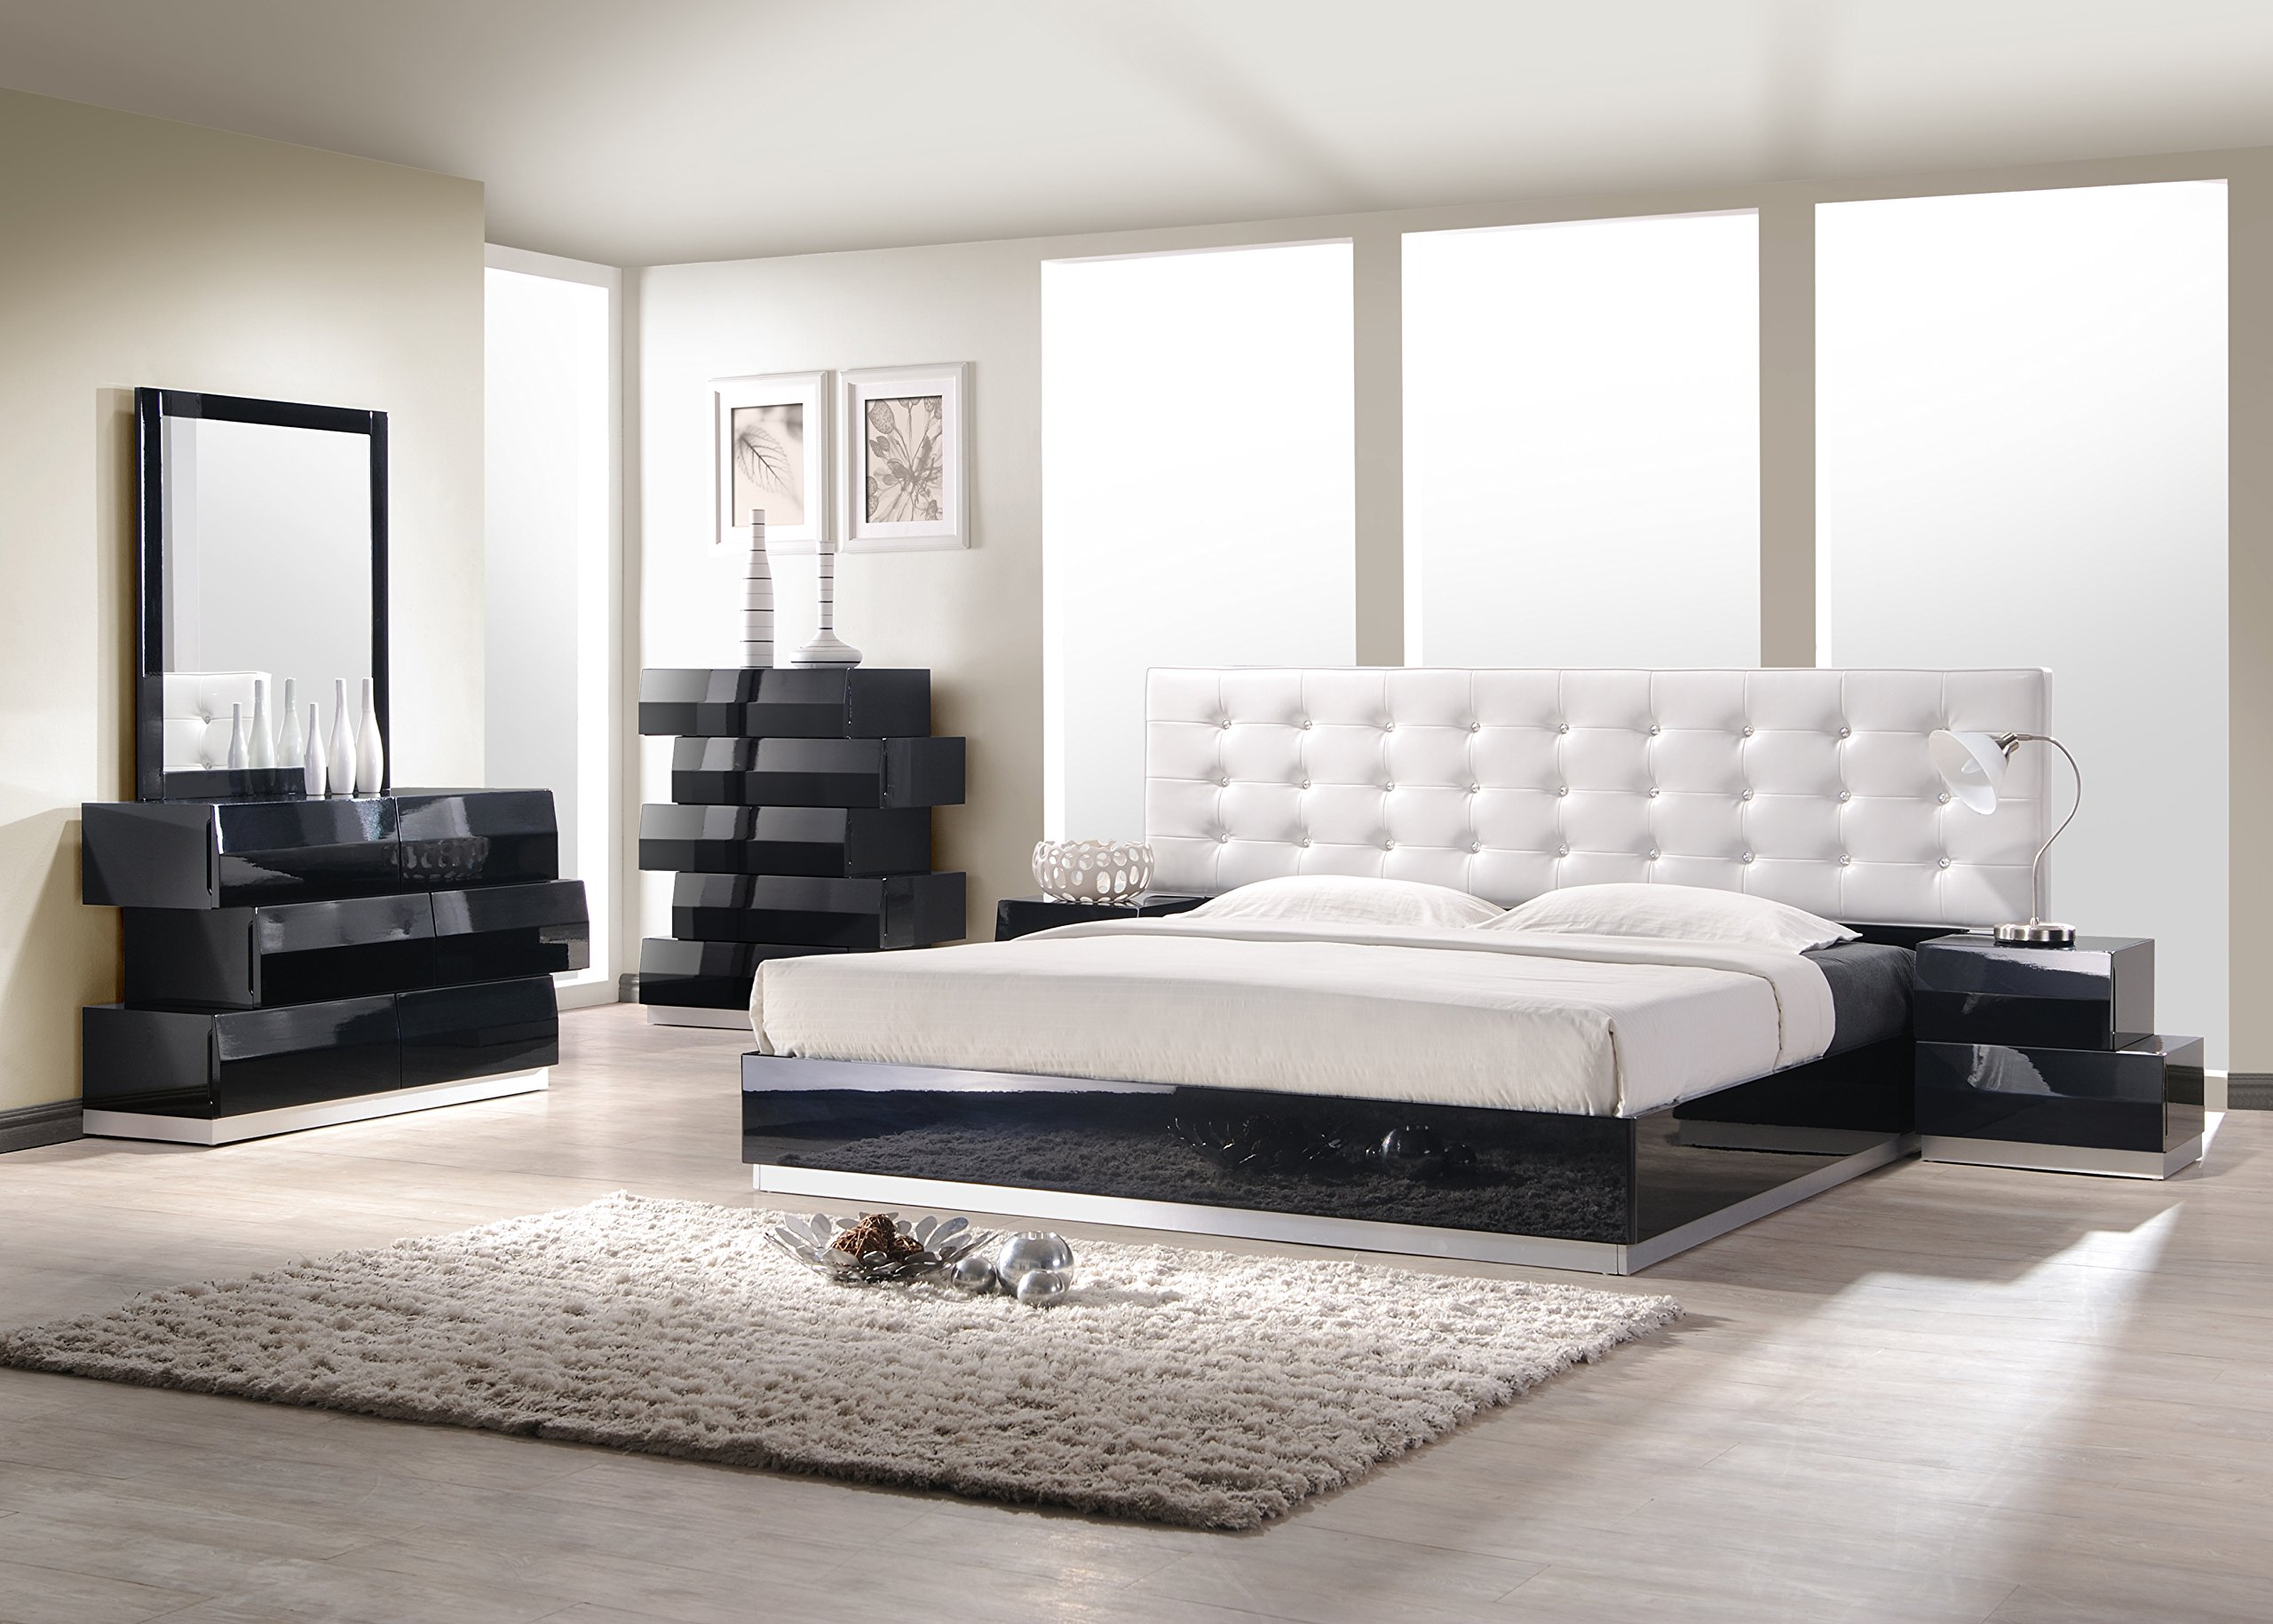 J and M Furniture Milan Black K Set with Chest Bedroom Furniture by J&M Furniture